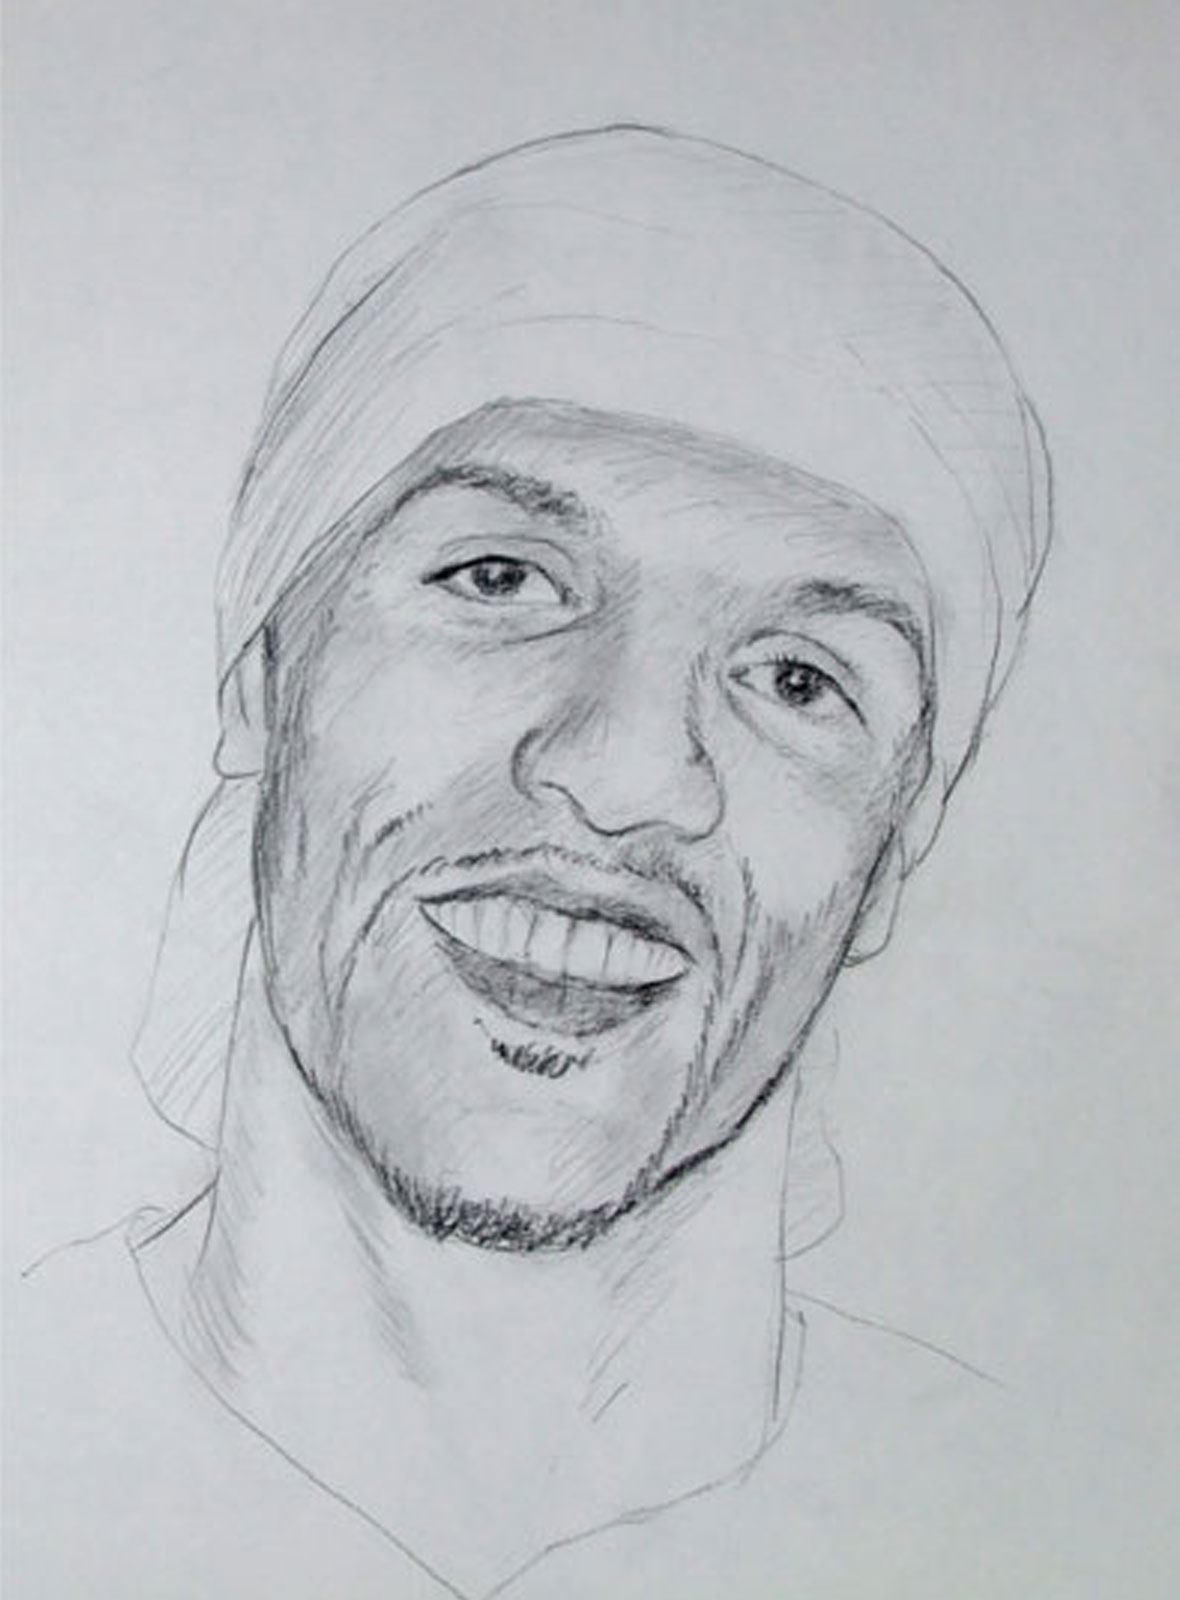 Craig David portrait drawing on paper